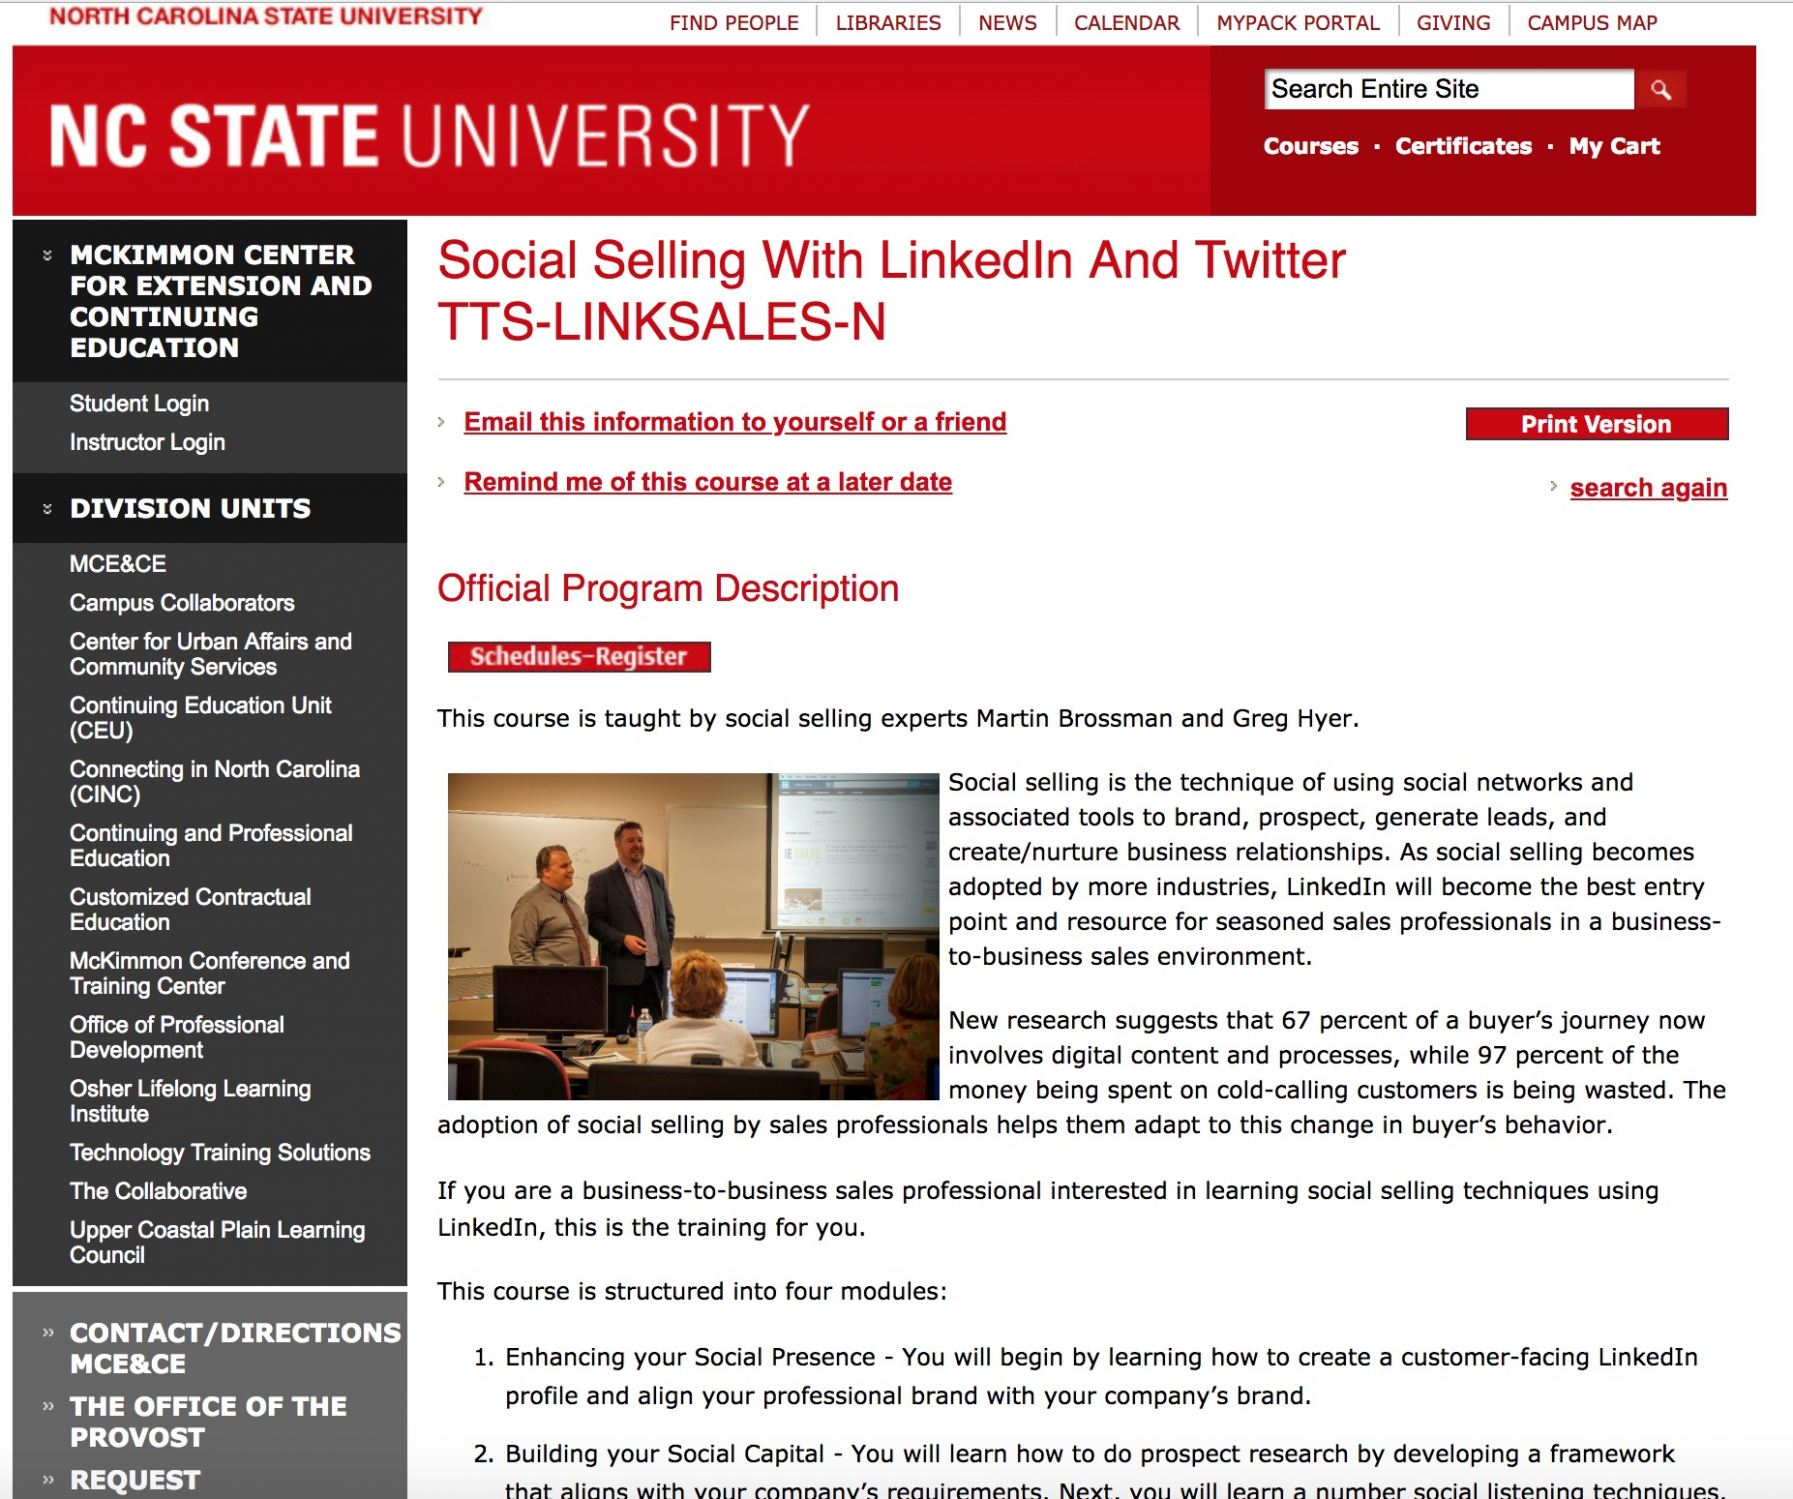 Social Selling at McKimmon Center